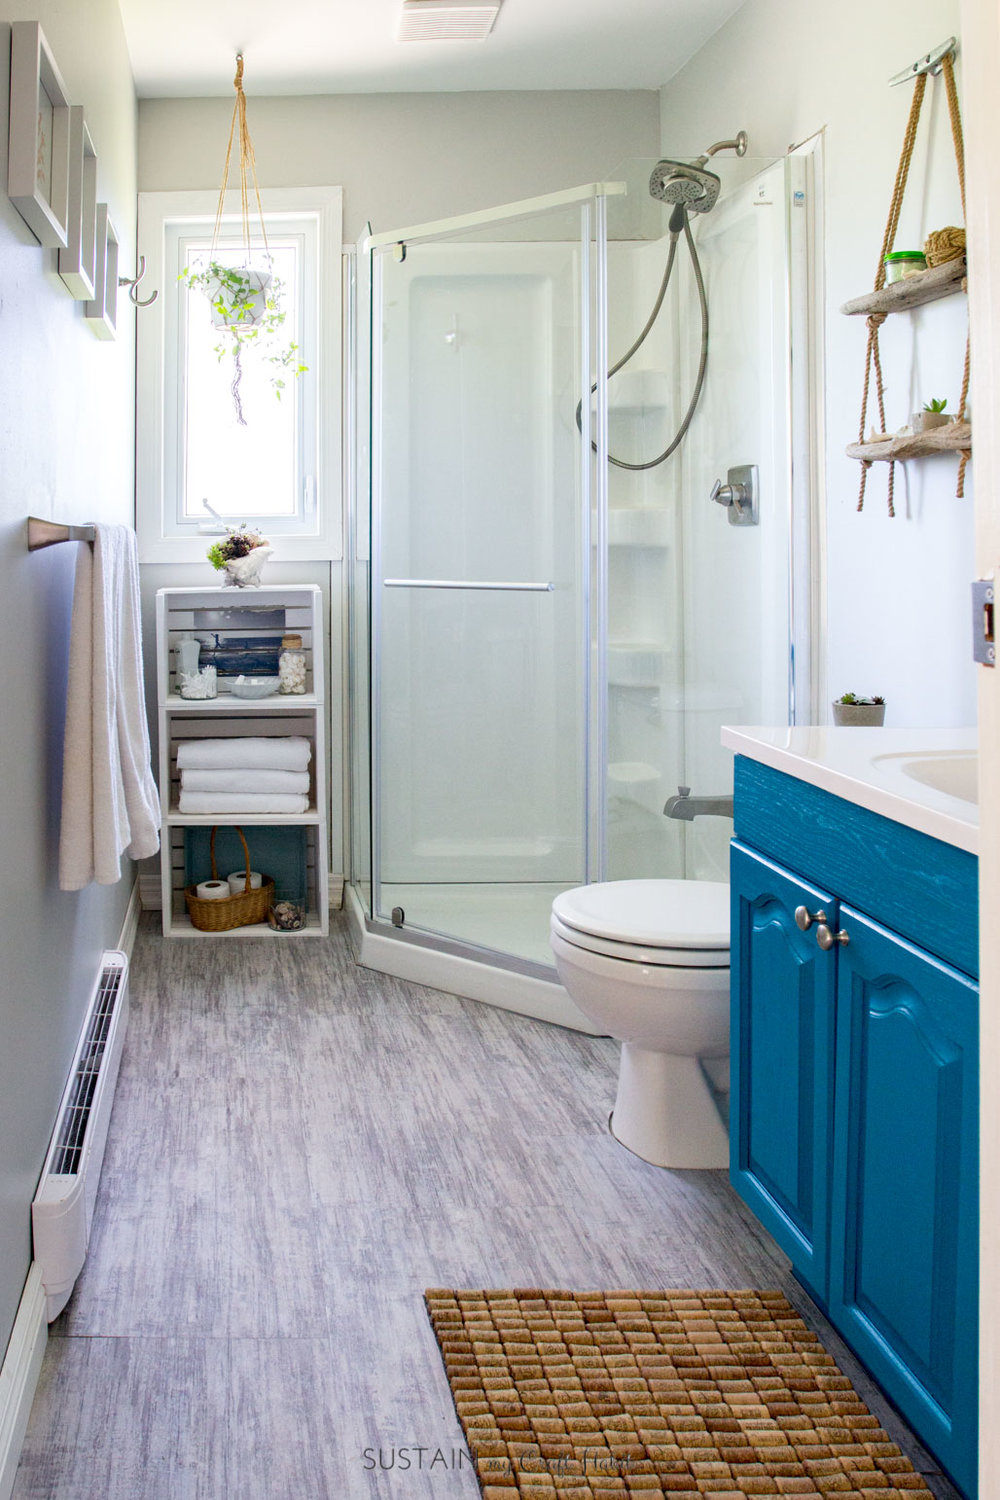 Can't get over the transformation of this small bathroom into a beach themed bathroom retreat! So many simple and budget-friendly bathroom makeover DIY ideas!